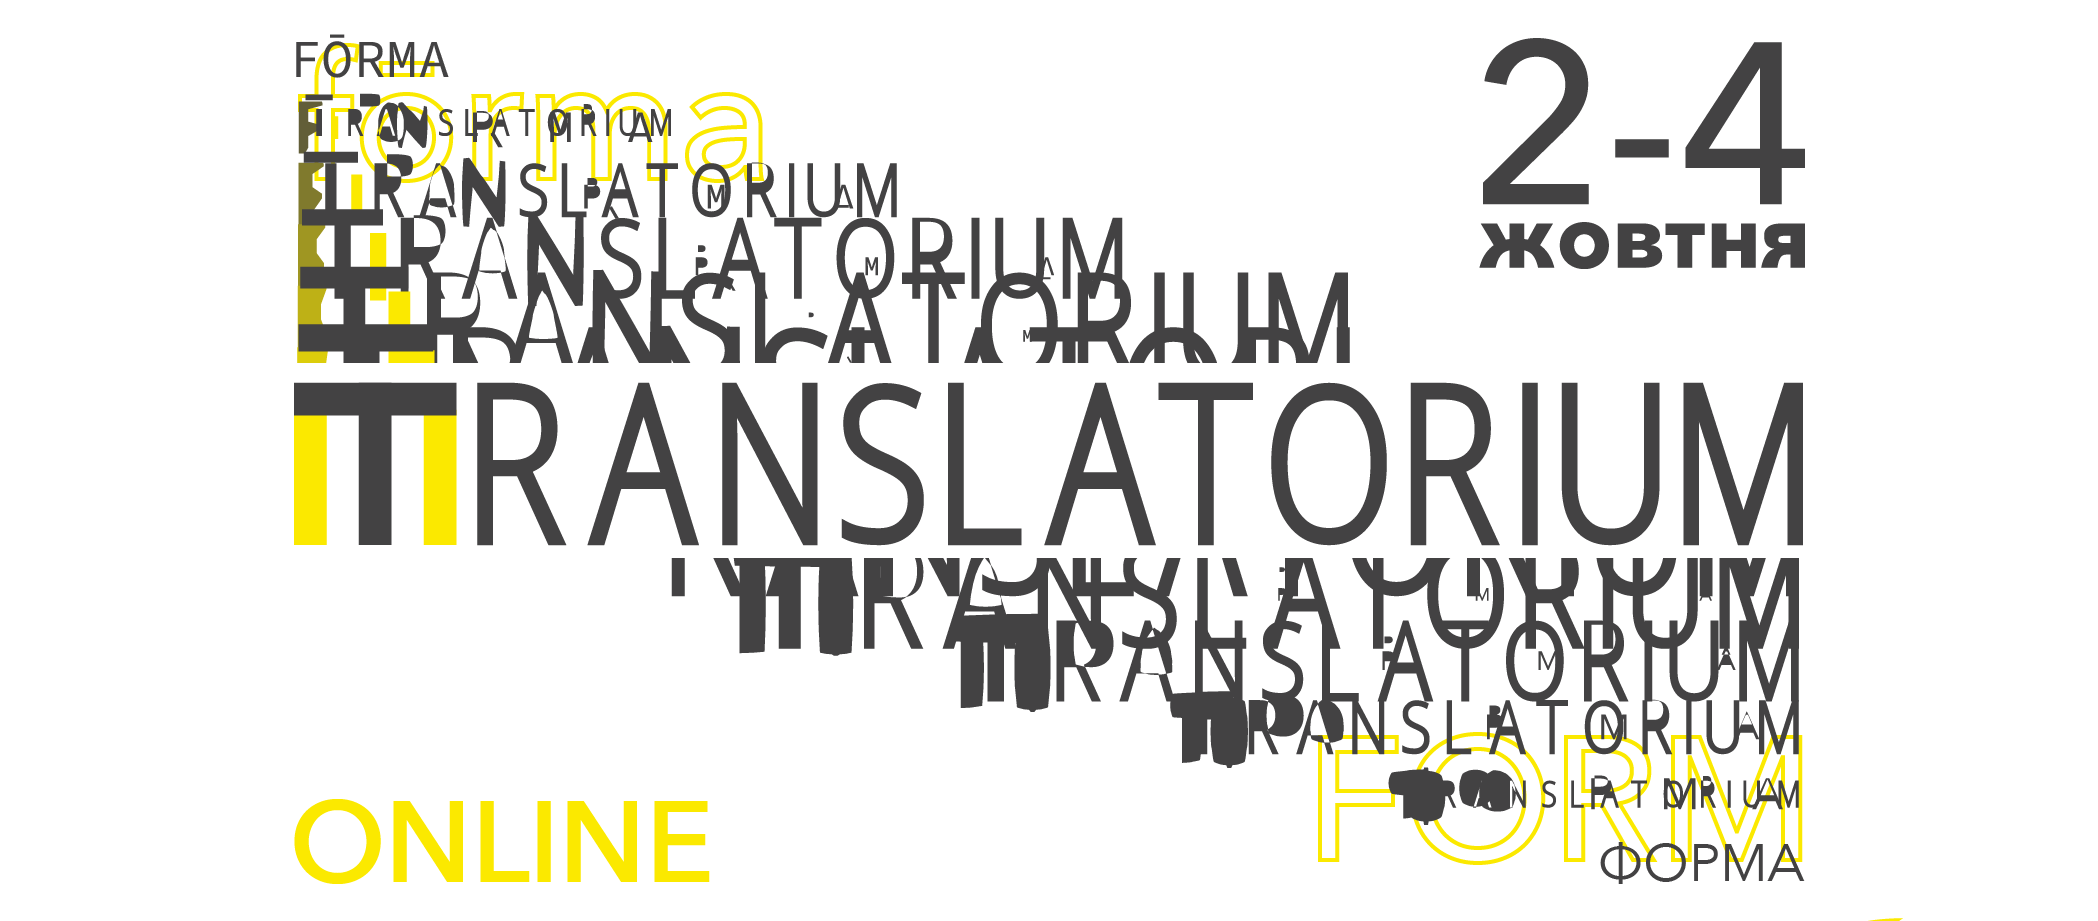 TRANSLATORIUM онлайн